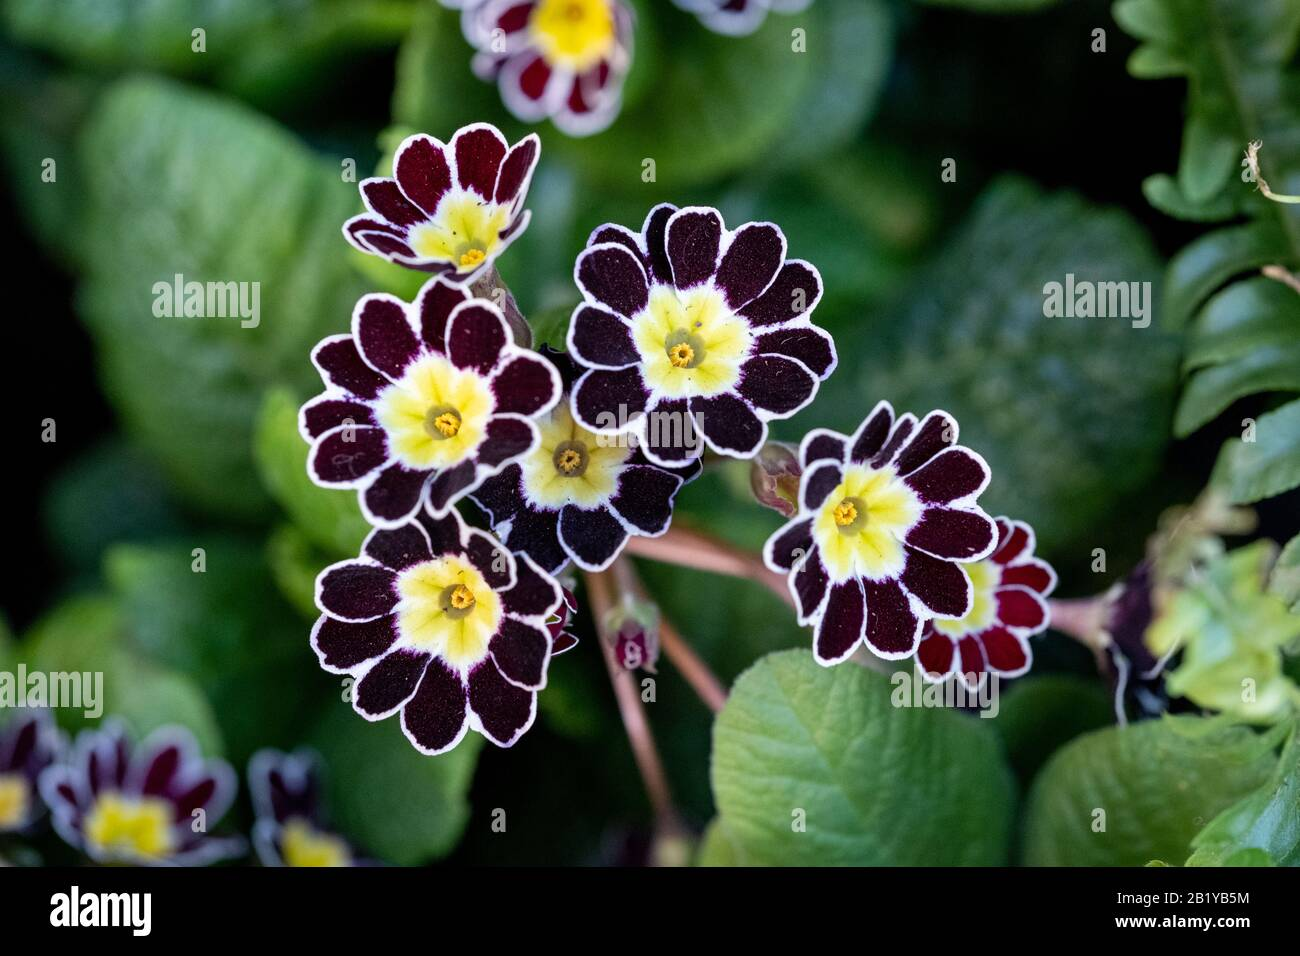 Silver Lace High Resolution Stock Photography and Images - Alamy